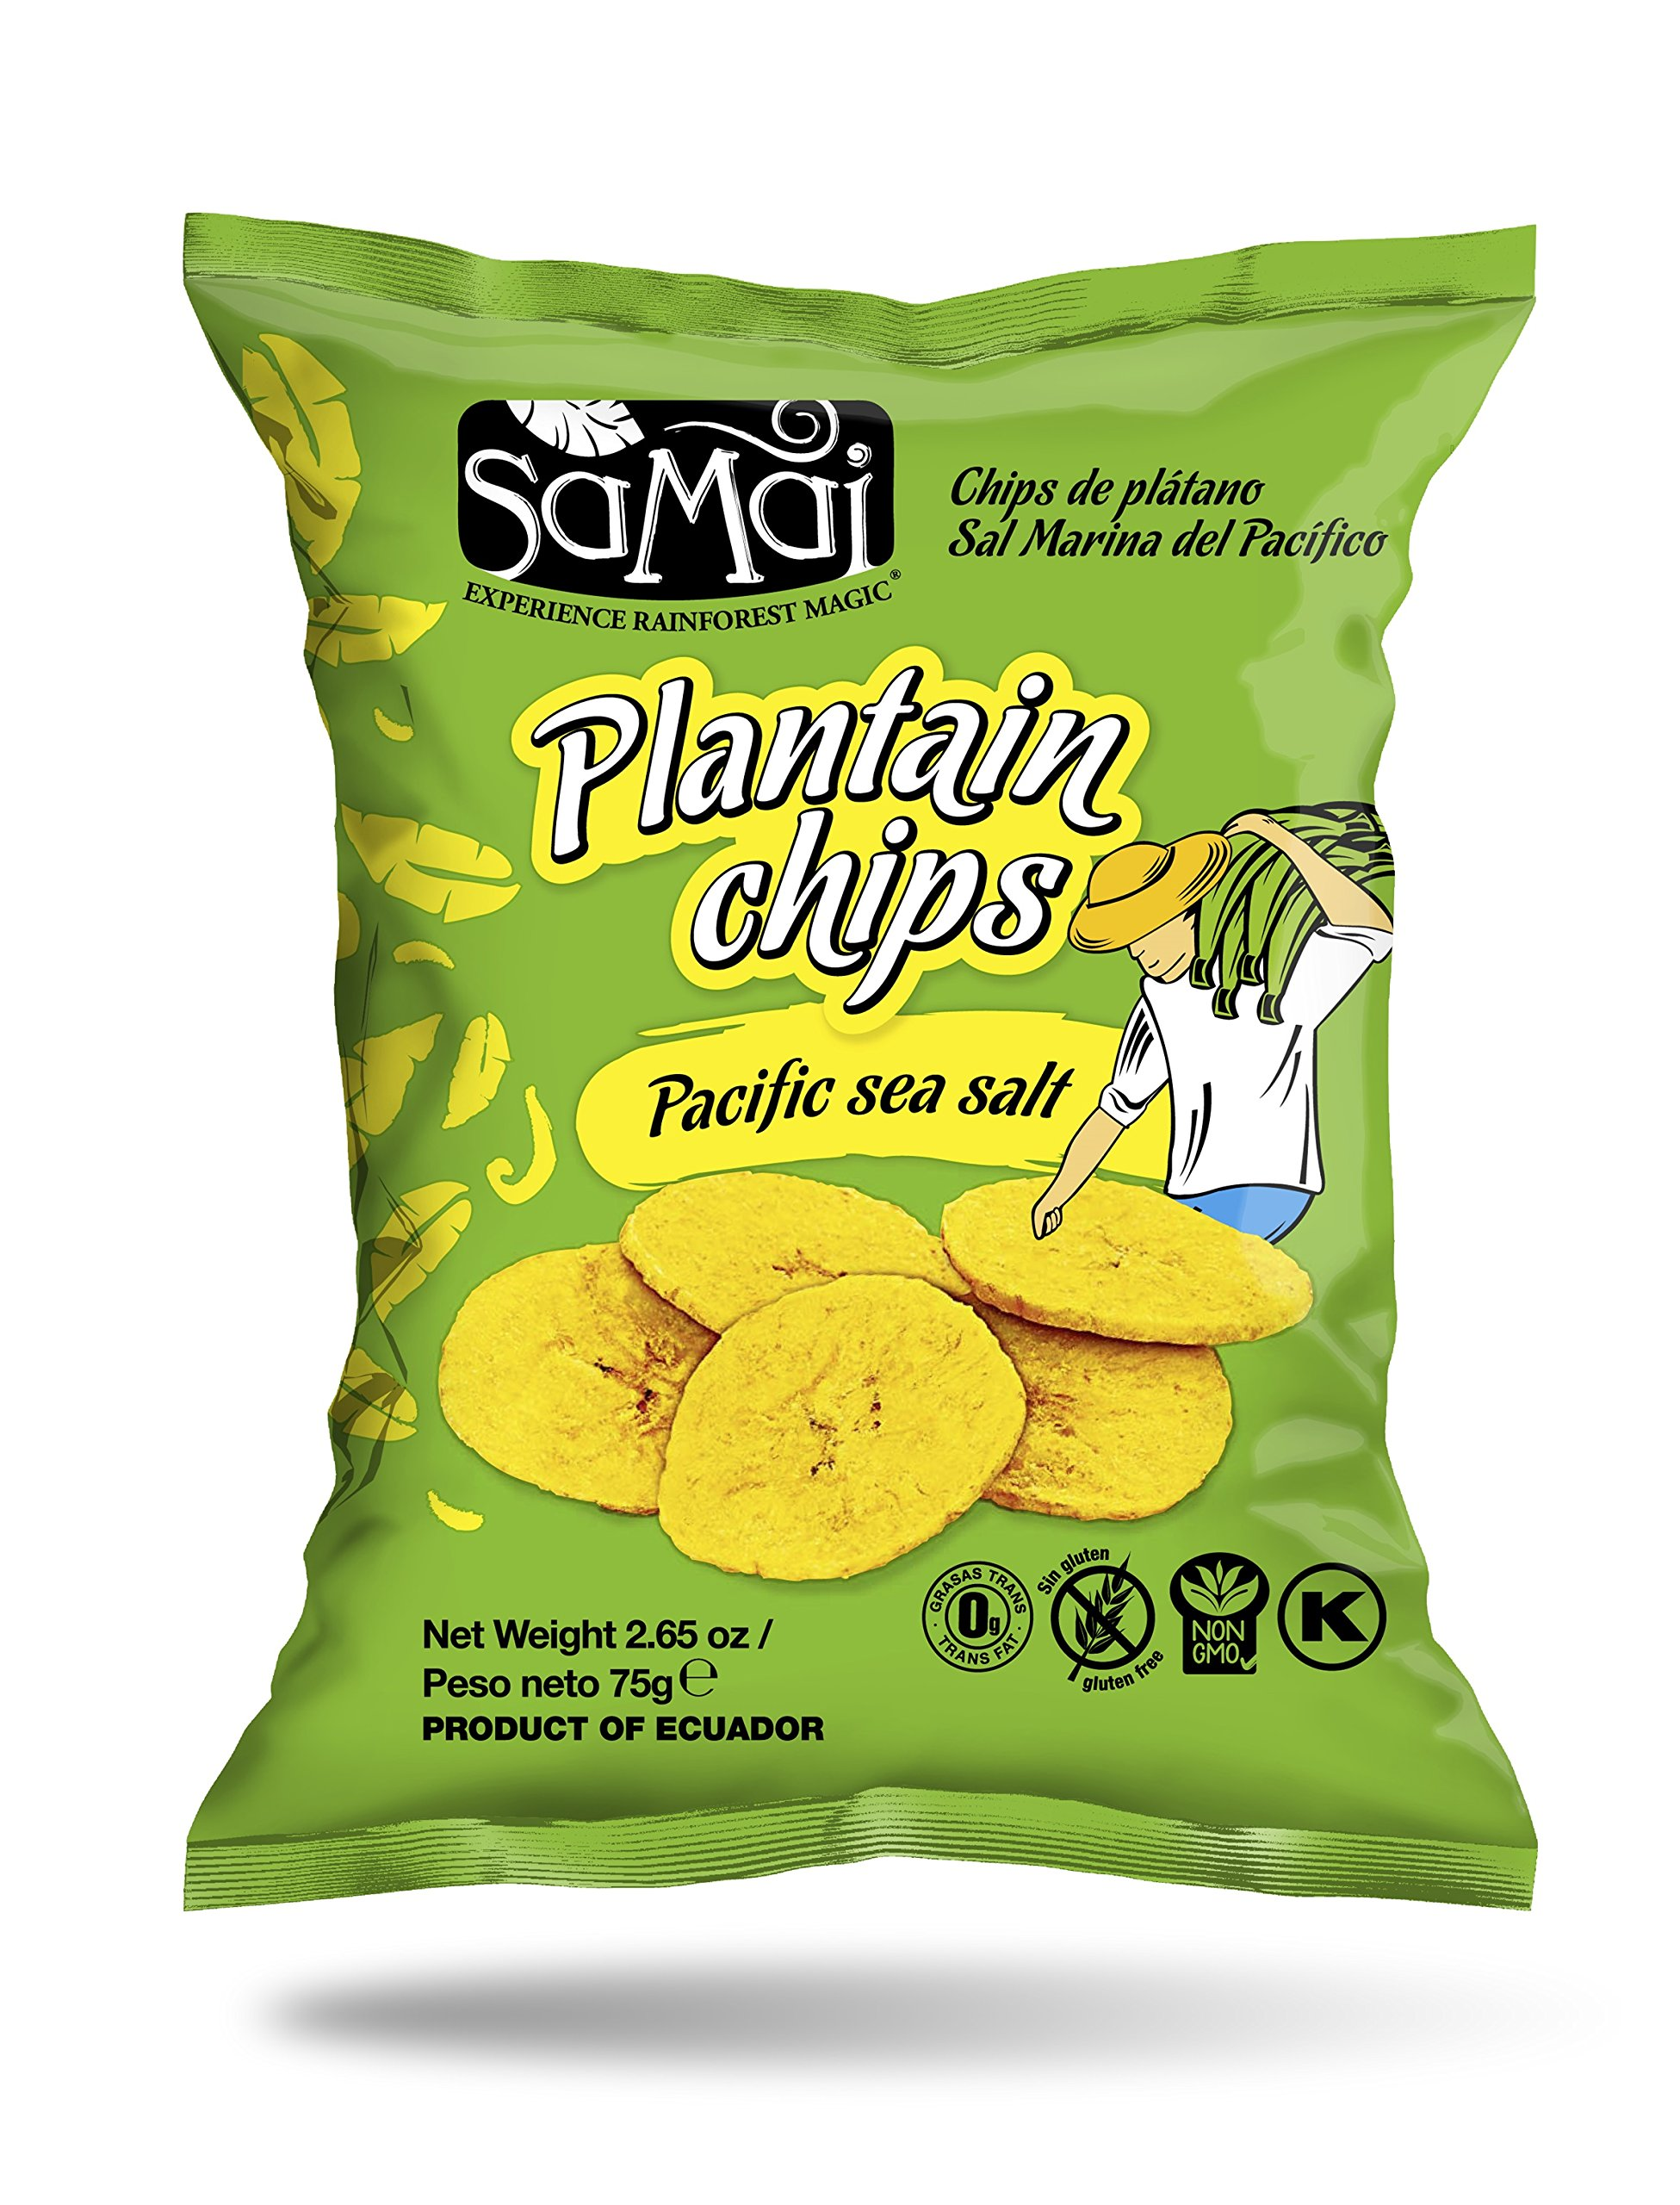 Samai Plantain Chips Pacific Sea Salt 2.65 oz (Pack of 15)